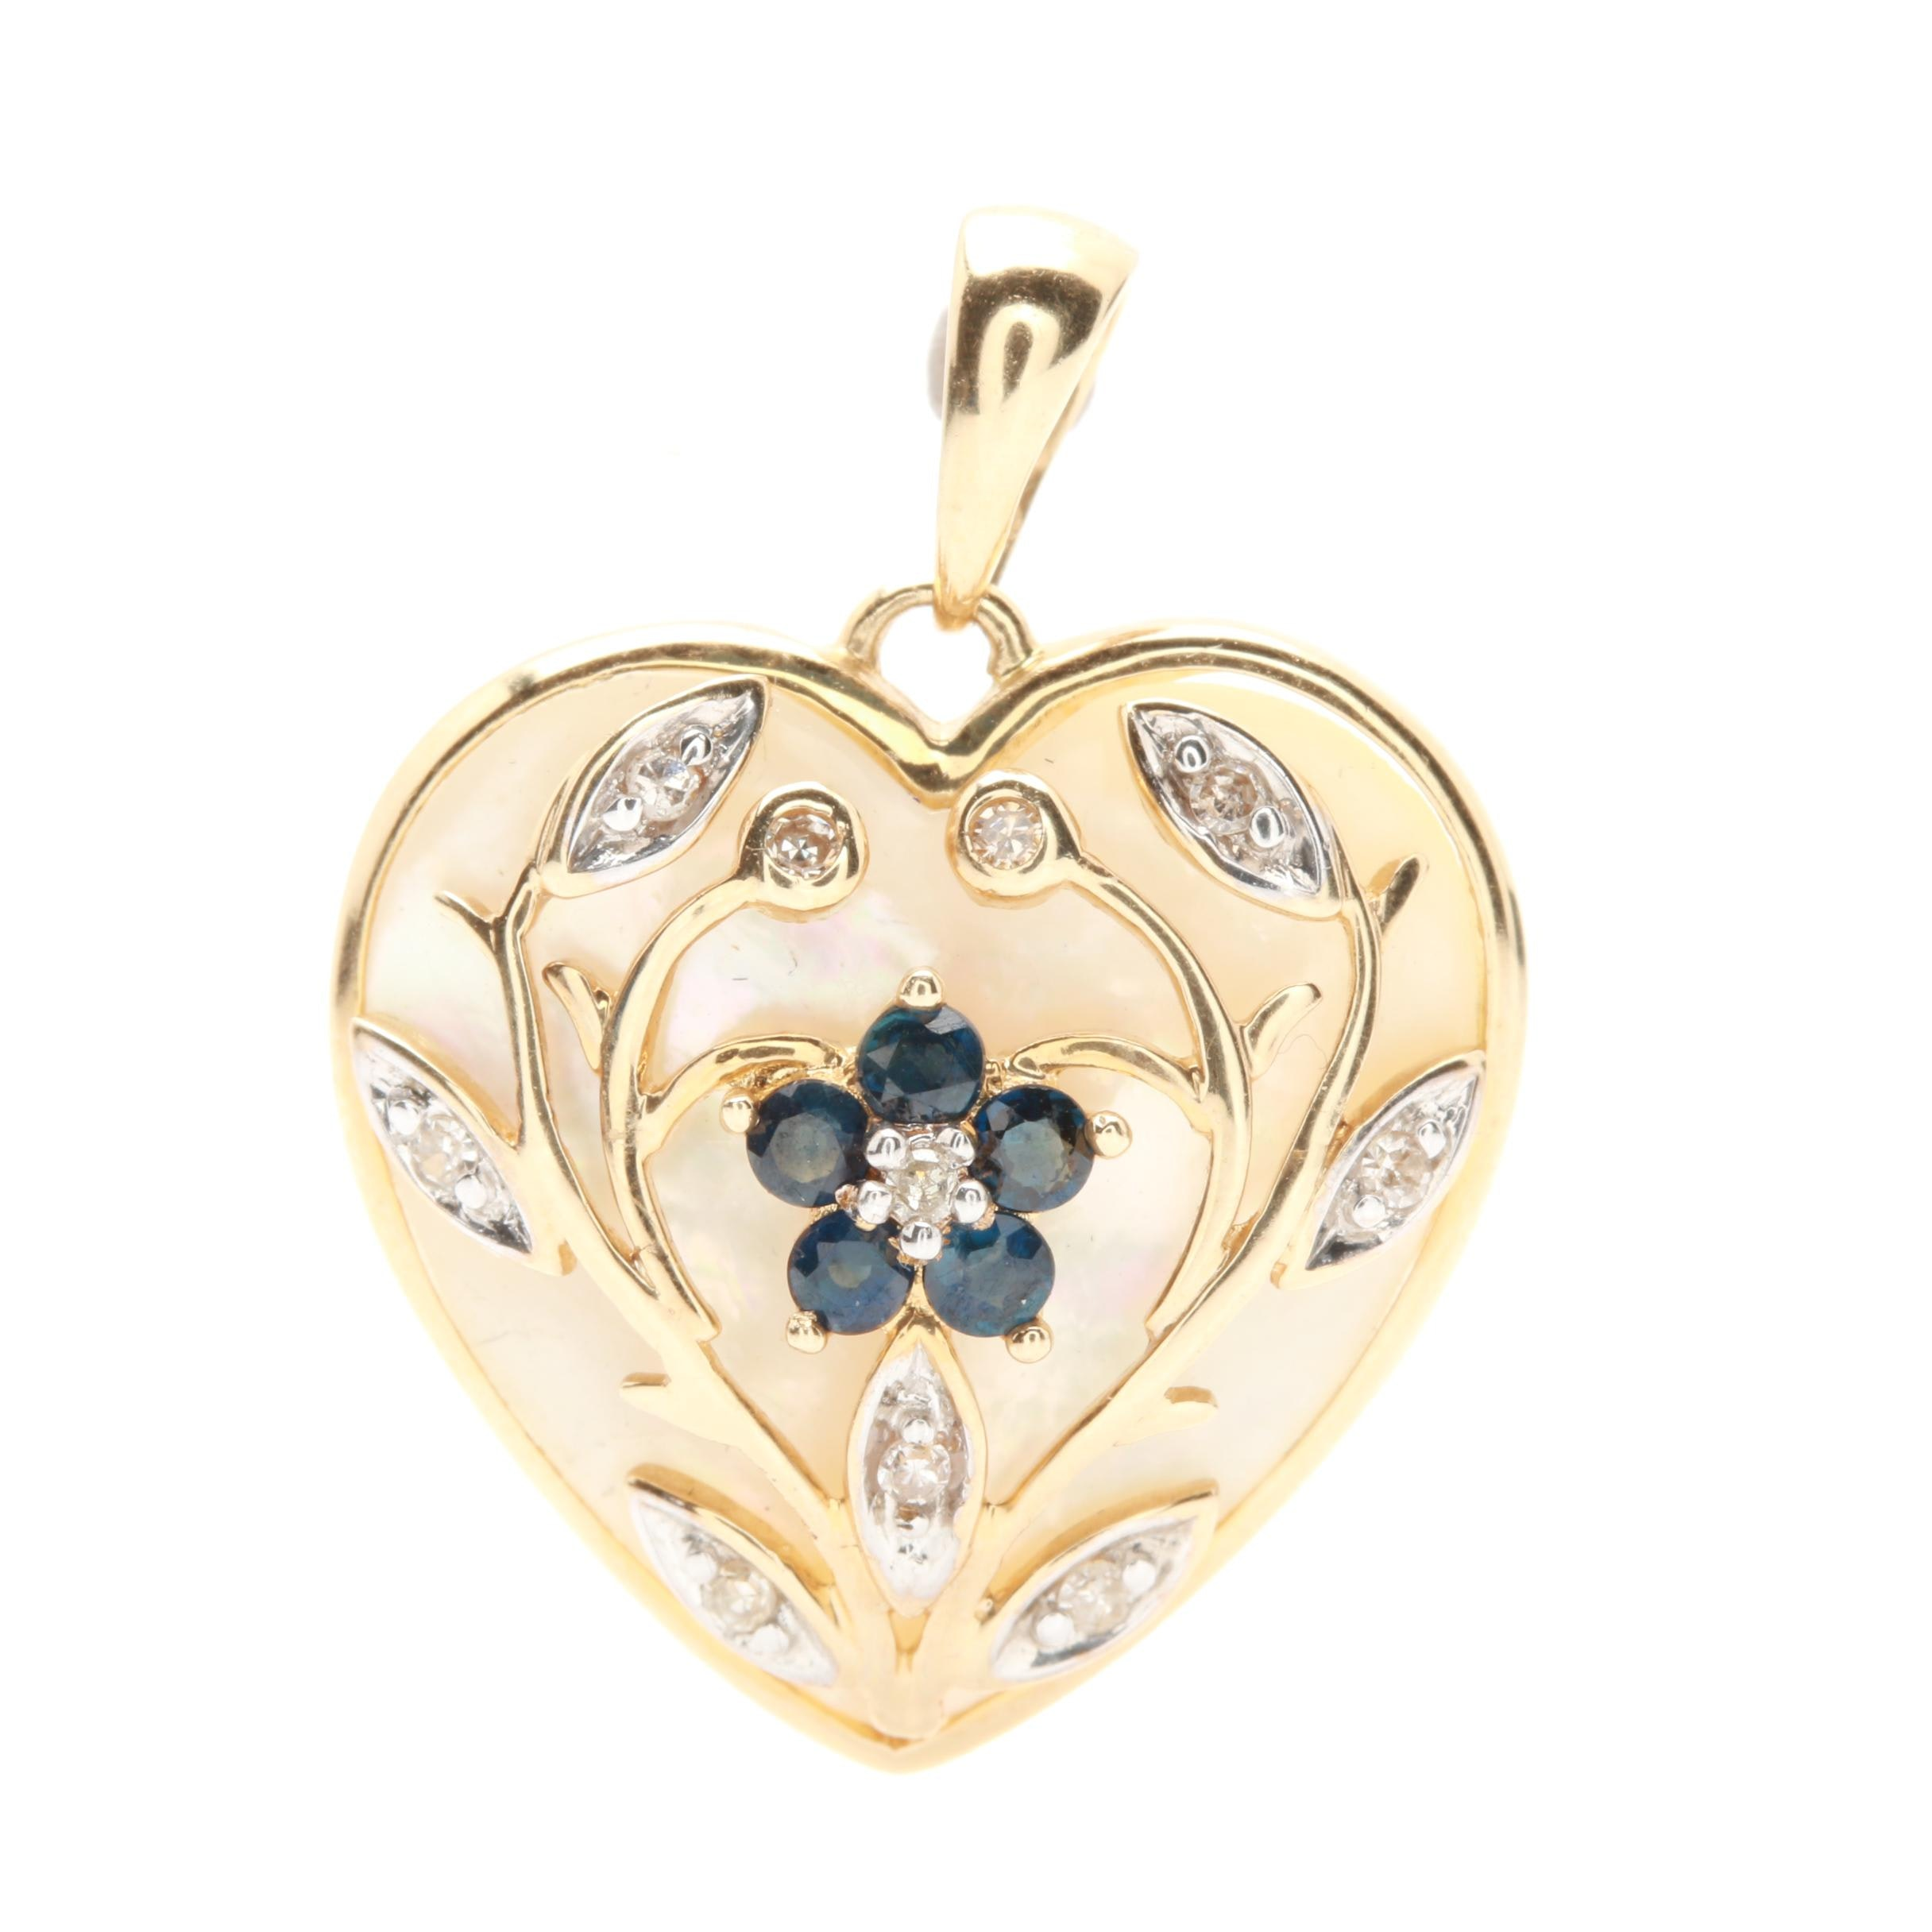 Alwand Vahan 10K Yellow Gold Mother of Pearl, Sapphire and Diamond Heart Pendant